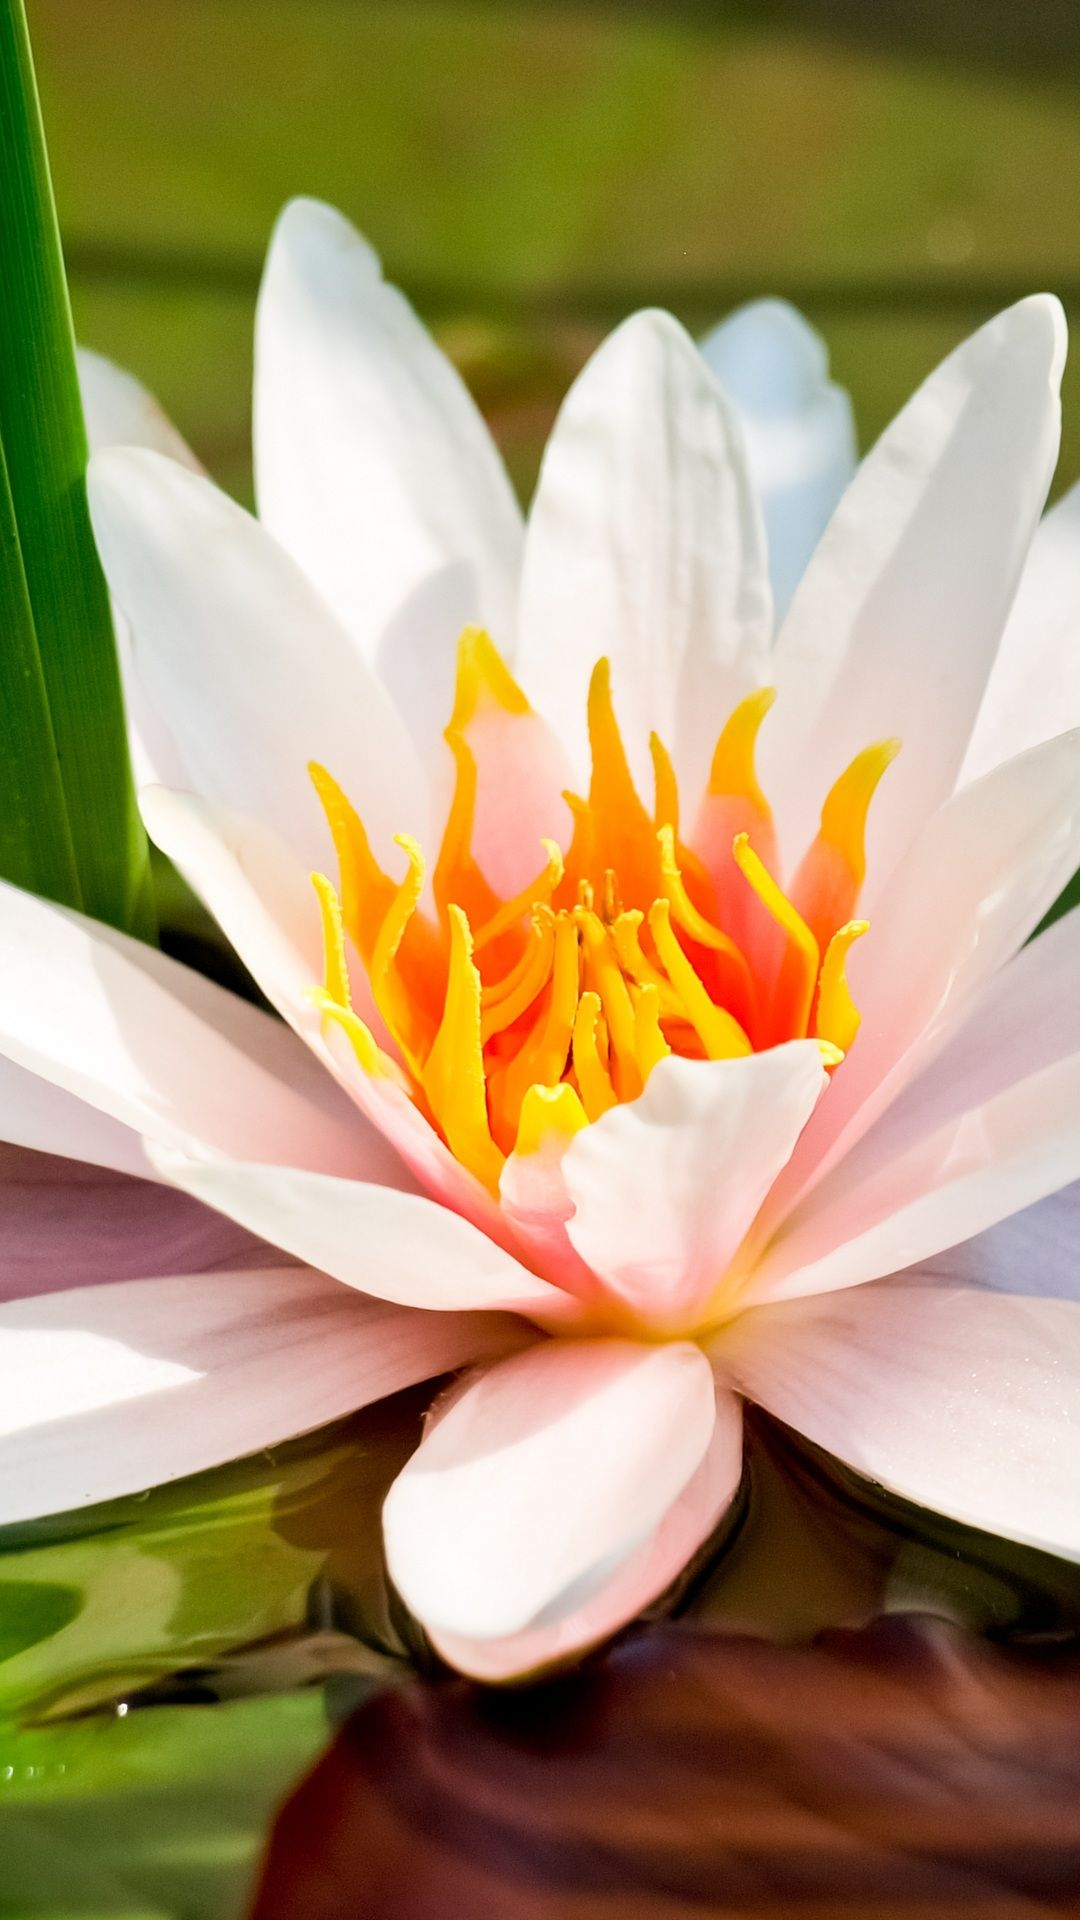 Iphone flowers (With images) White lotus flower, Lily